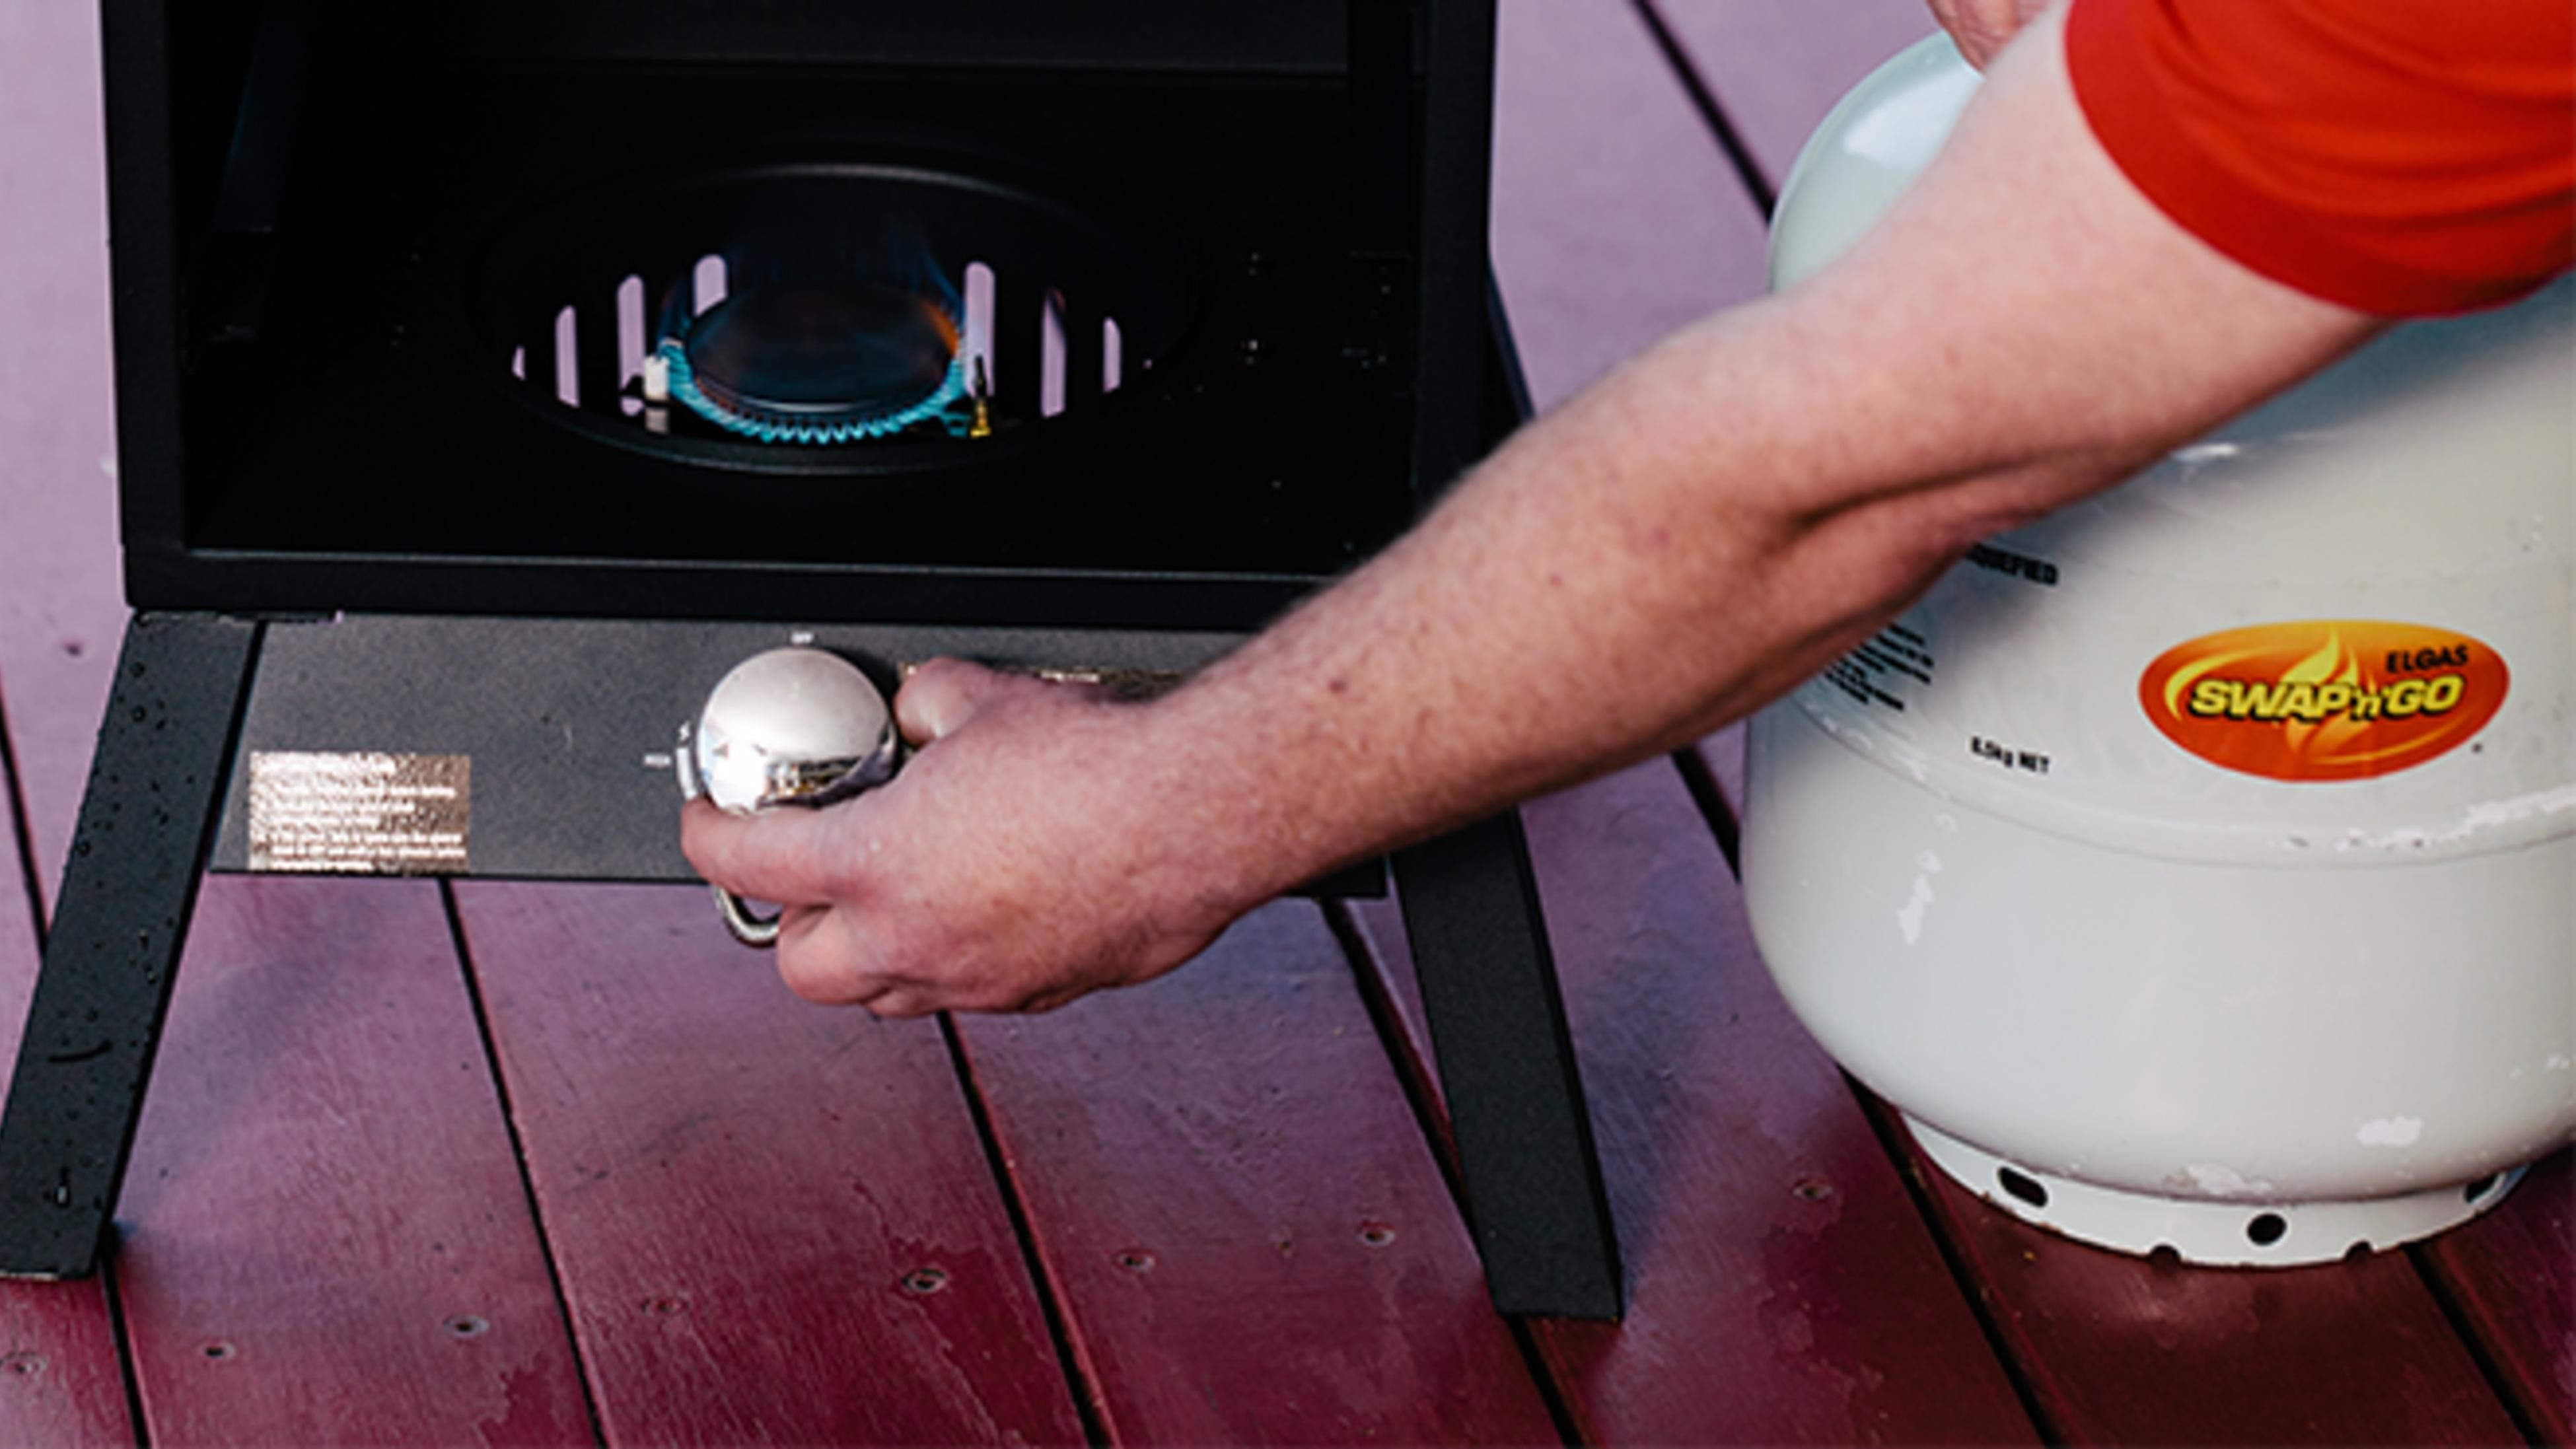 Person adjusting dial on BBQ.